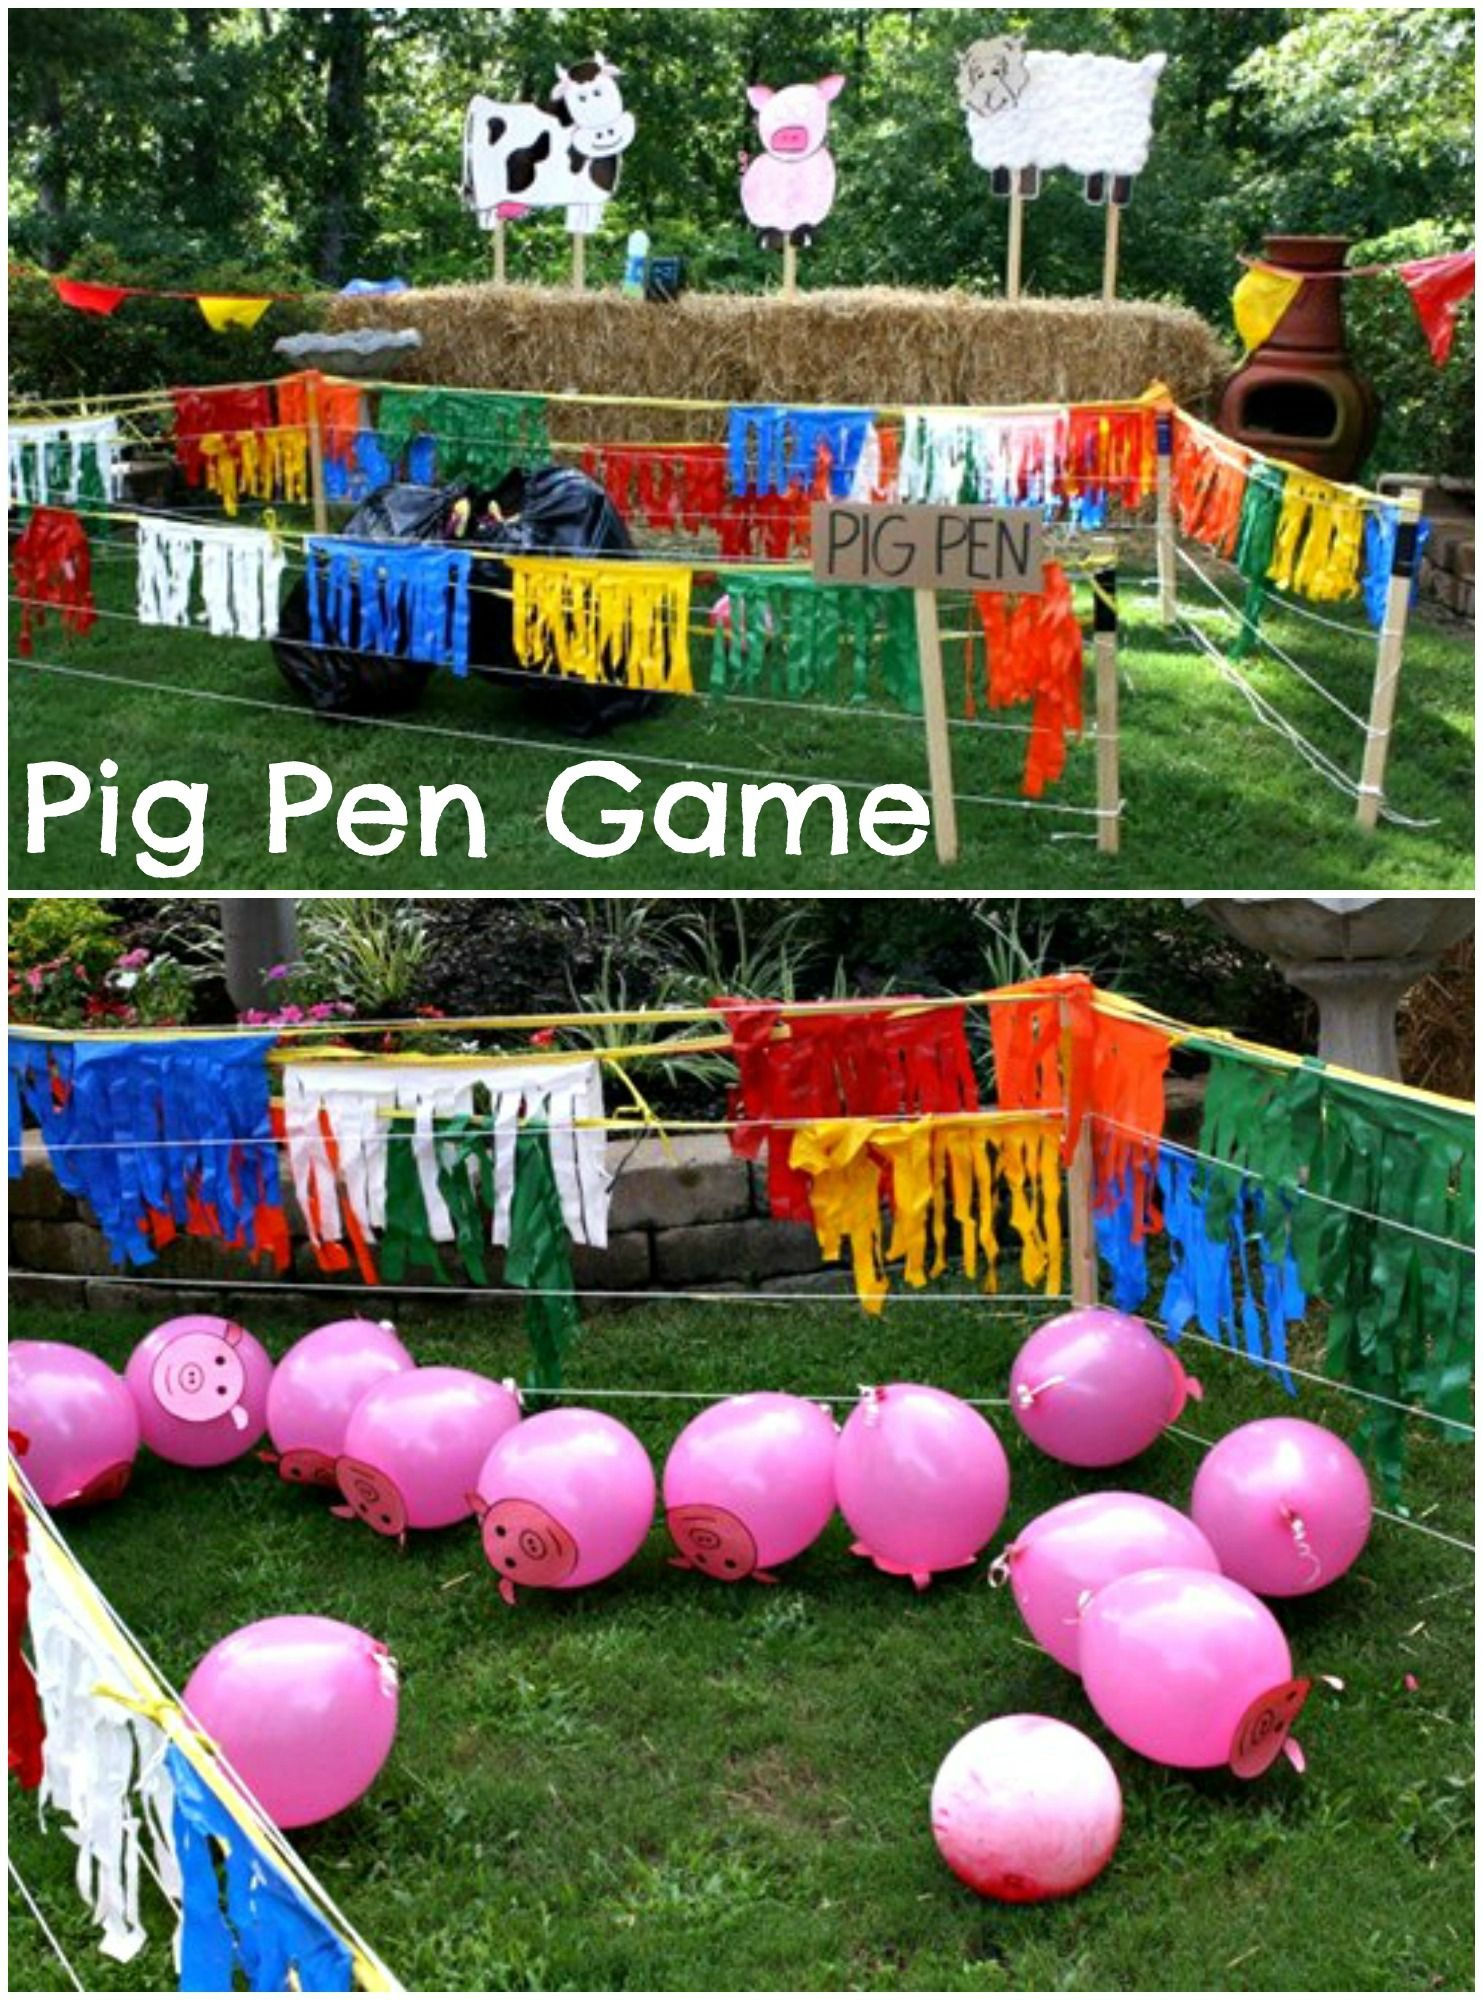 The Kids Ran Around Laughing And Squealing At This Pig Pen Game